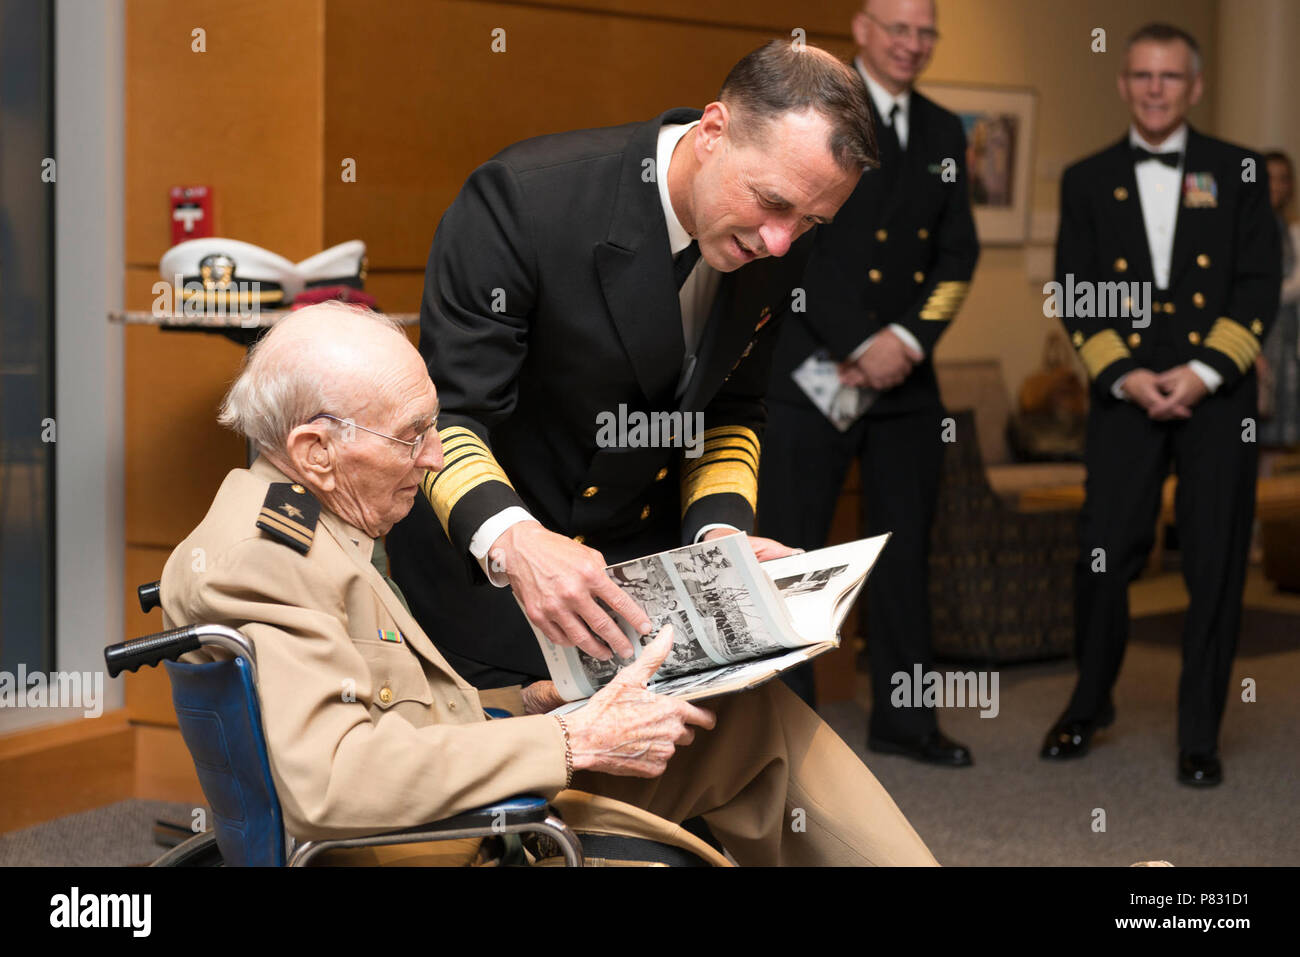 BETHESDA, Md. (Oct. 5, 2016) Chief of Naval Operations Admiral John Richardson presents a cruise book to World War II veteran Norton Hurd after the Navy Birthday Concert.  The Navy Band was celebrating the Navy's 241st birthday. Stock Photo